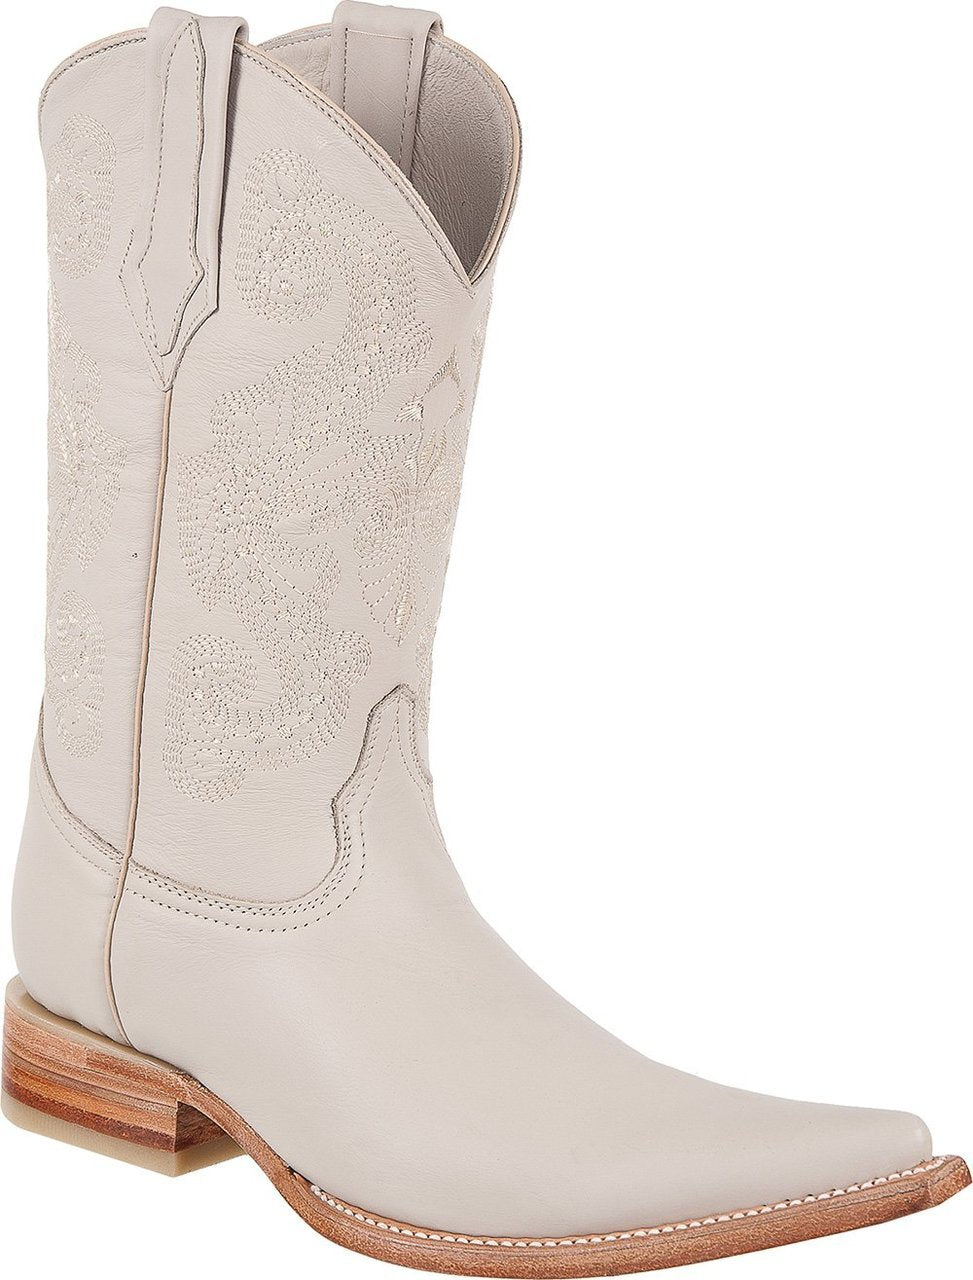 TIERRA BLANCA Men's Bone Boots - Ch Toe